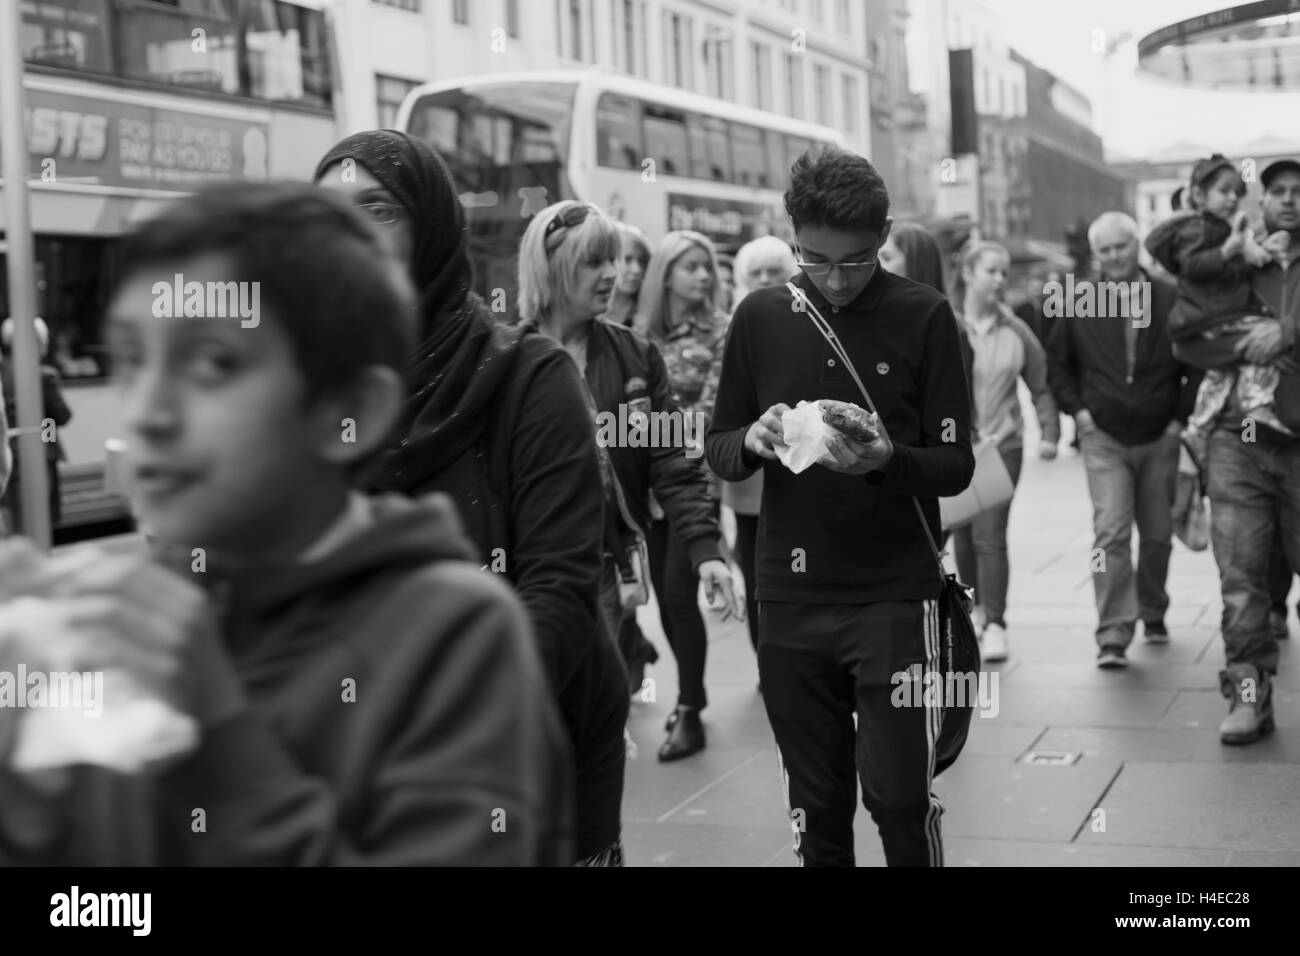 Street Photograph,y Glasgow, Chips, Crowd, Rush Hour - Stock Image